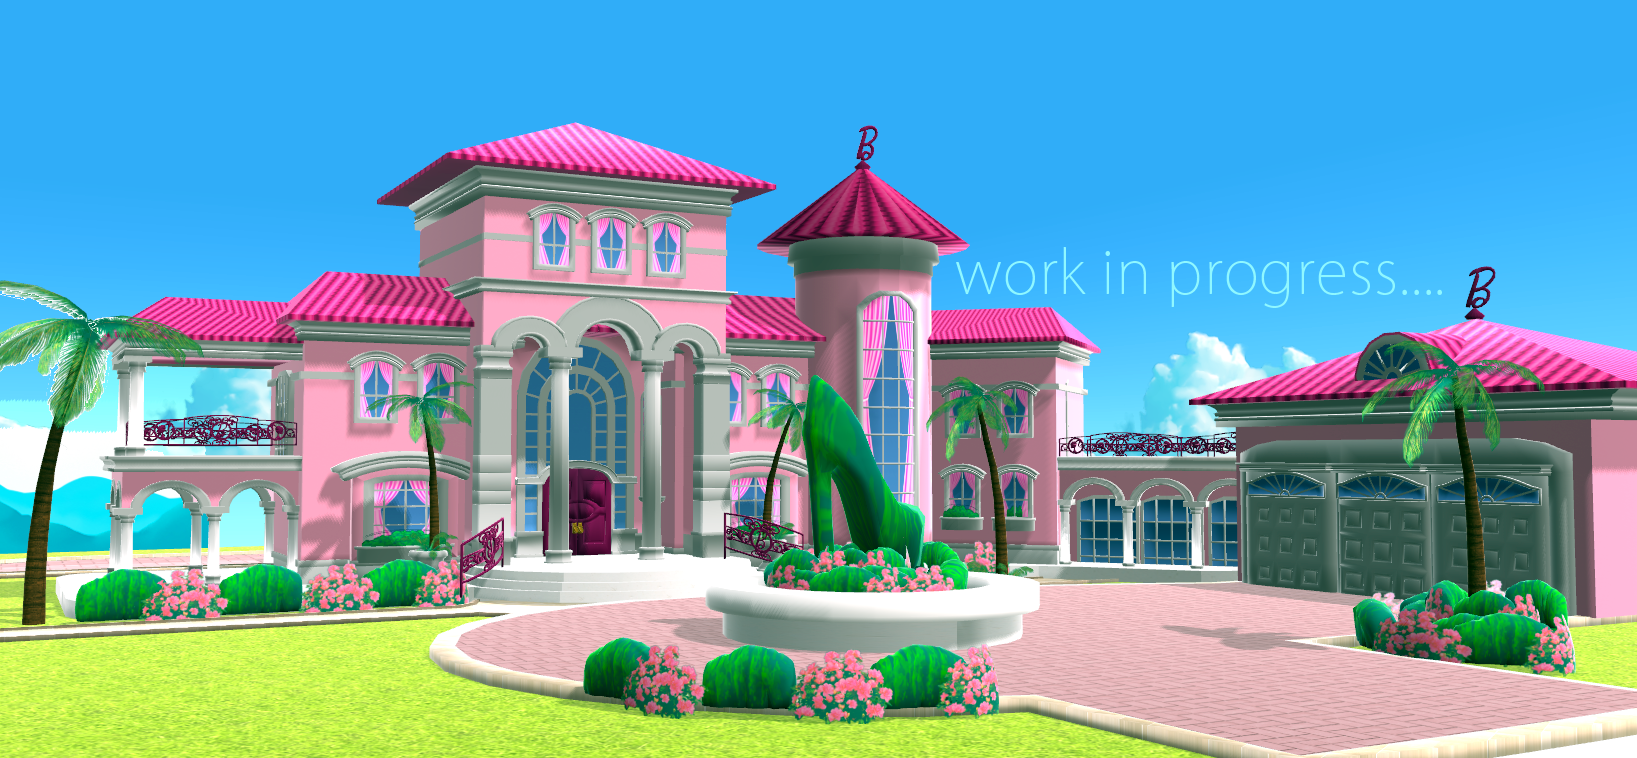 Barbie dream house wip 2 by chatterhead on deviantart for 3d wallpaper for dream home